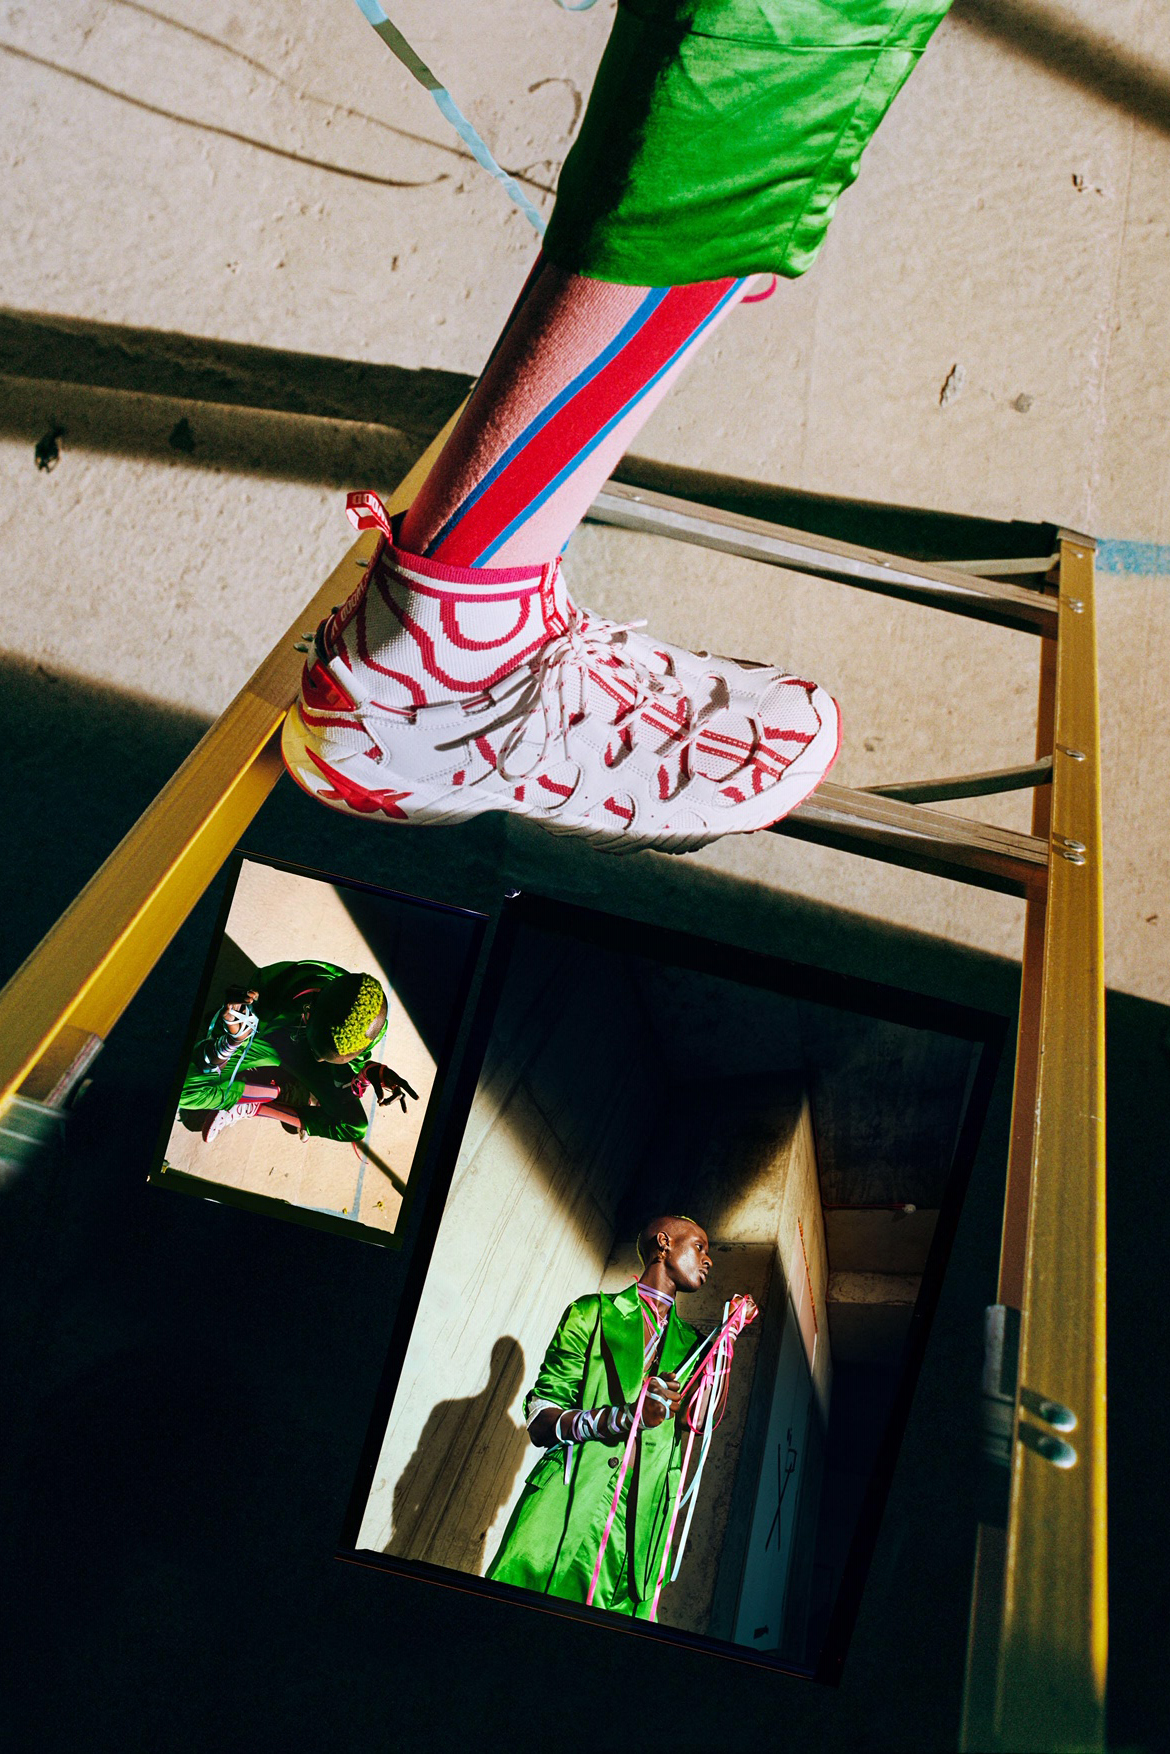 Vivienne Westwood x ASICS Collab Teaser Collaboration Shoes Trainers Kicks Sneakers Footwear Cop Purchase Buy 2019 GEL-MAI